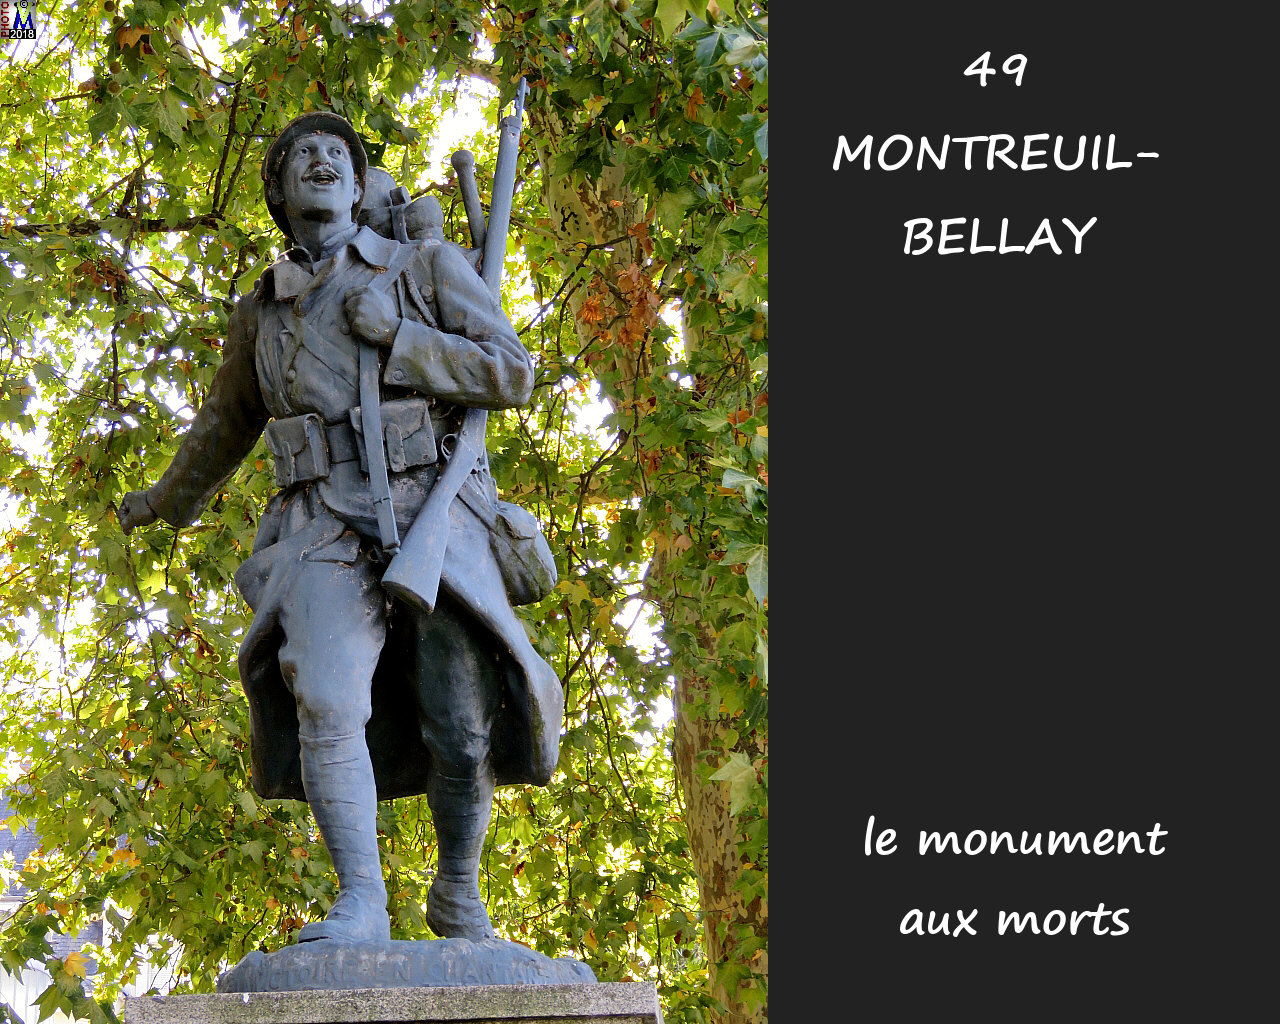 49MONTREUIL-BELLAY_morts_1002.jpg